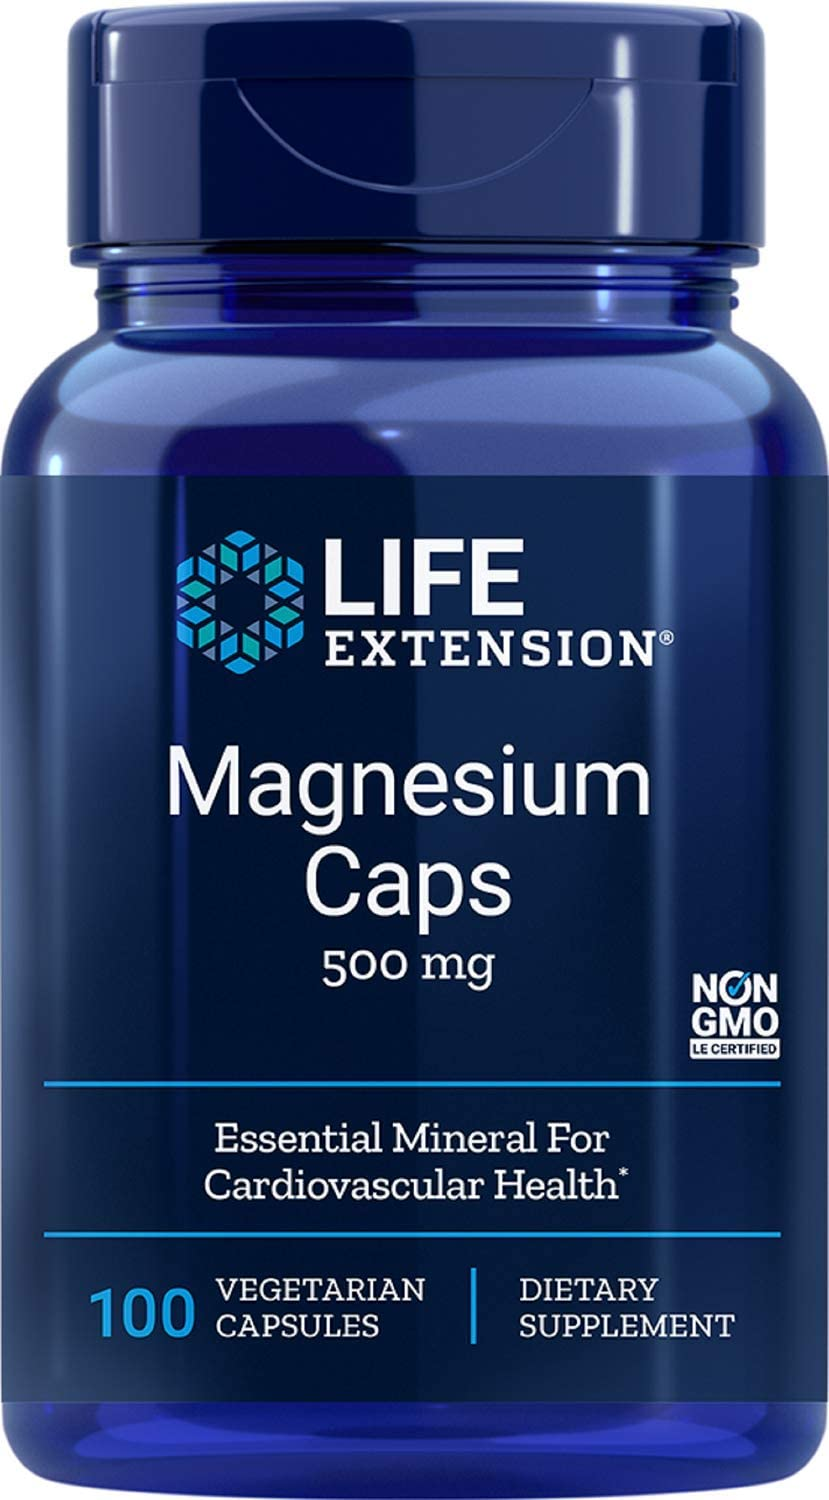 Life Extension Magnesium 500mg, 100 Vegetarian Capsules